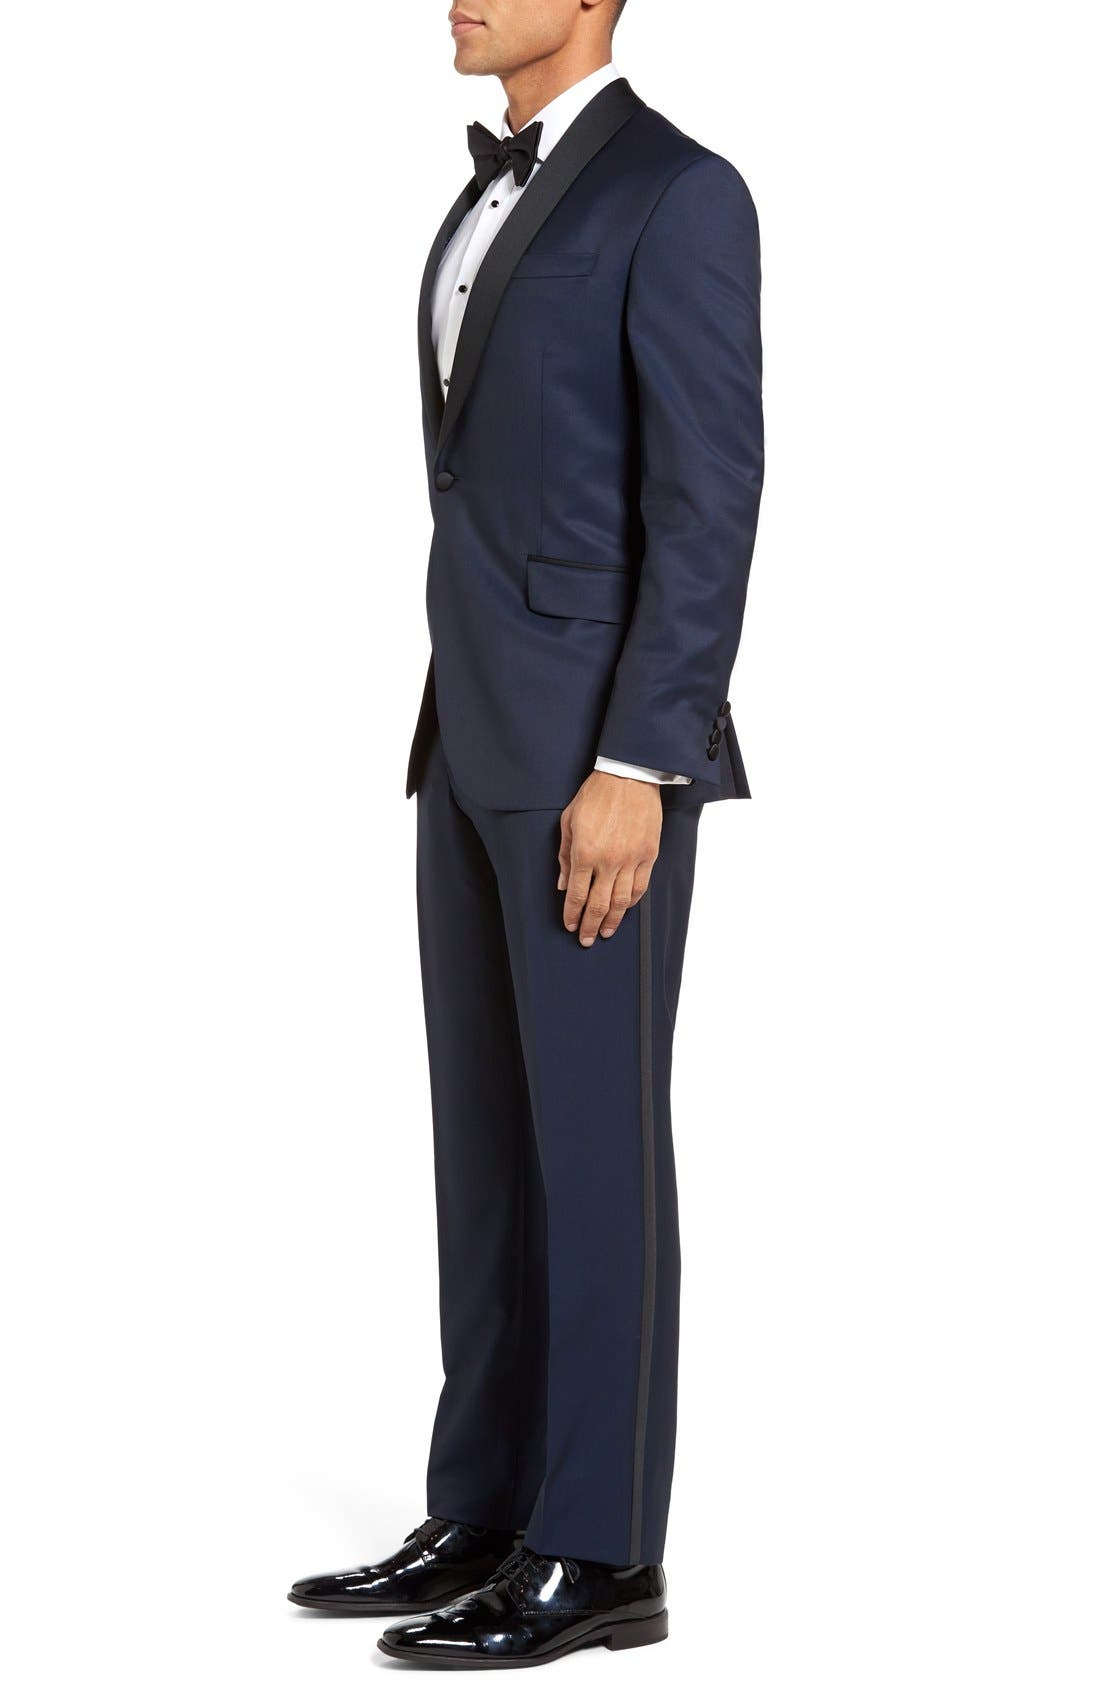 TED BAKER LONDON, Josh Trim Fit Navy Shawl Lapel Tuxedo, Alternate thumbnail 6, color, NAVY BLUE